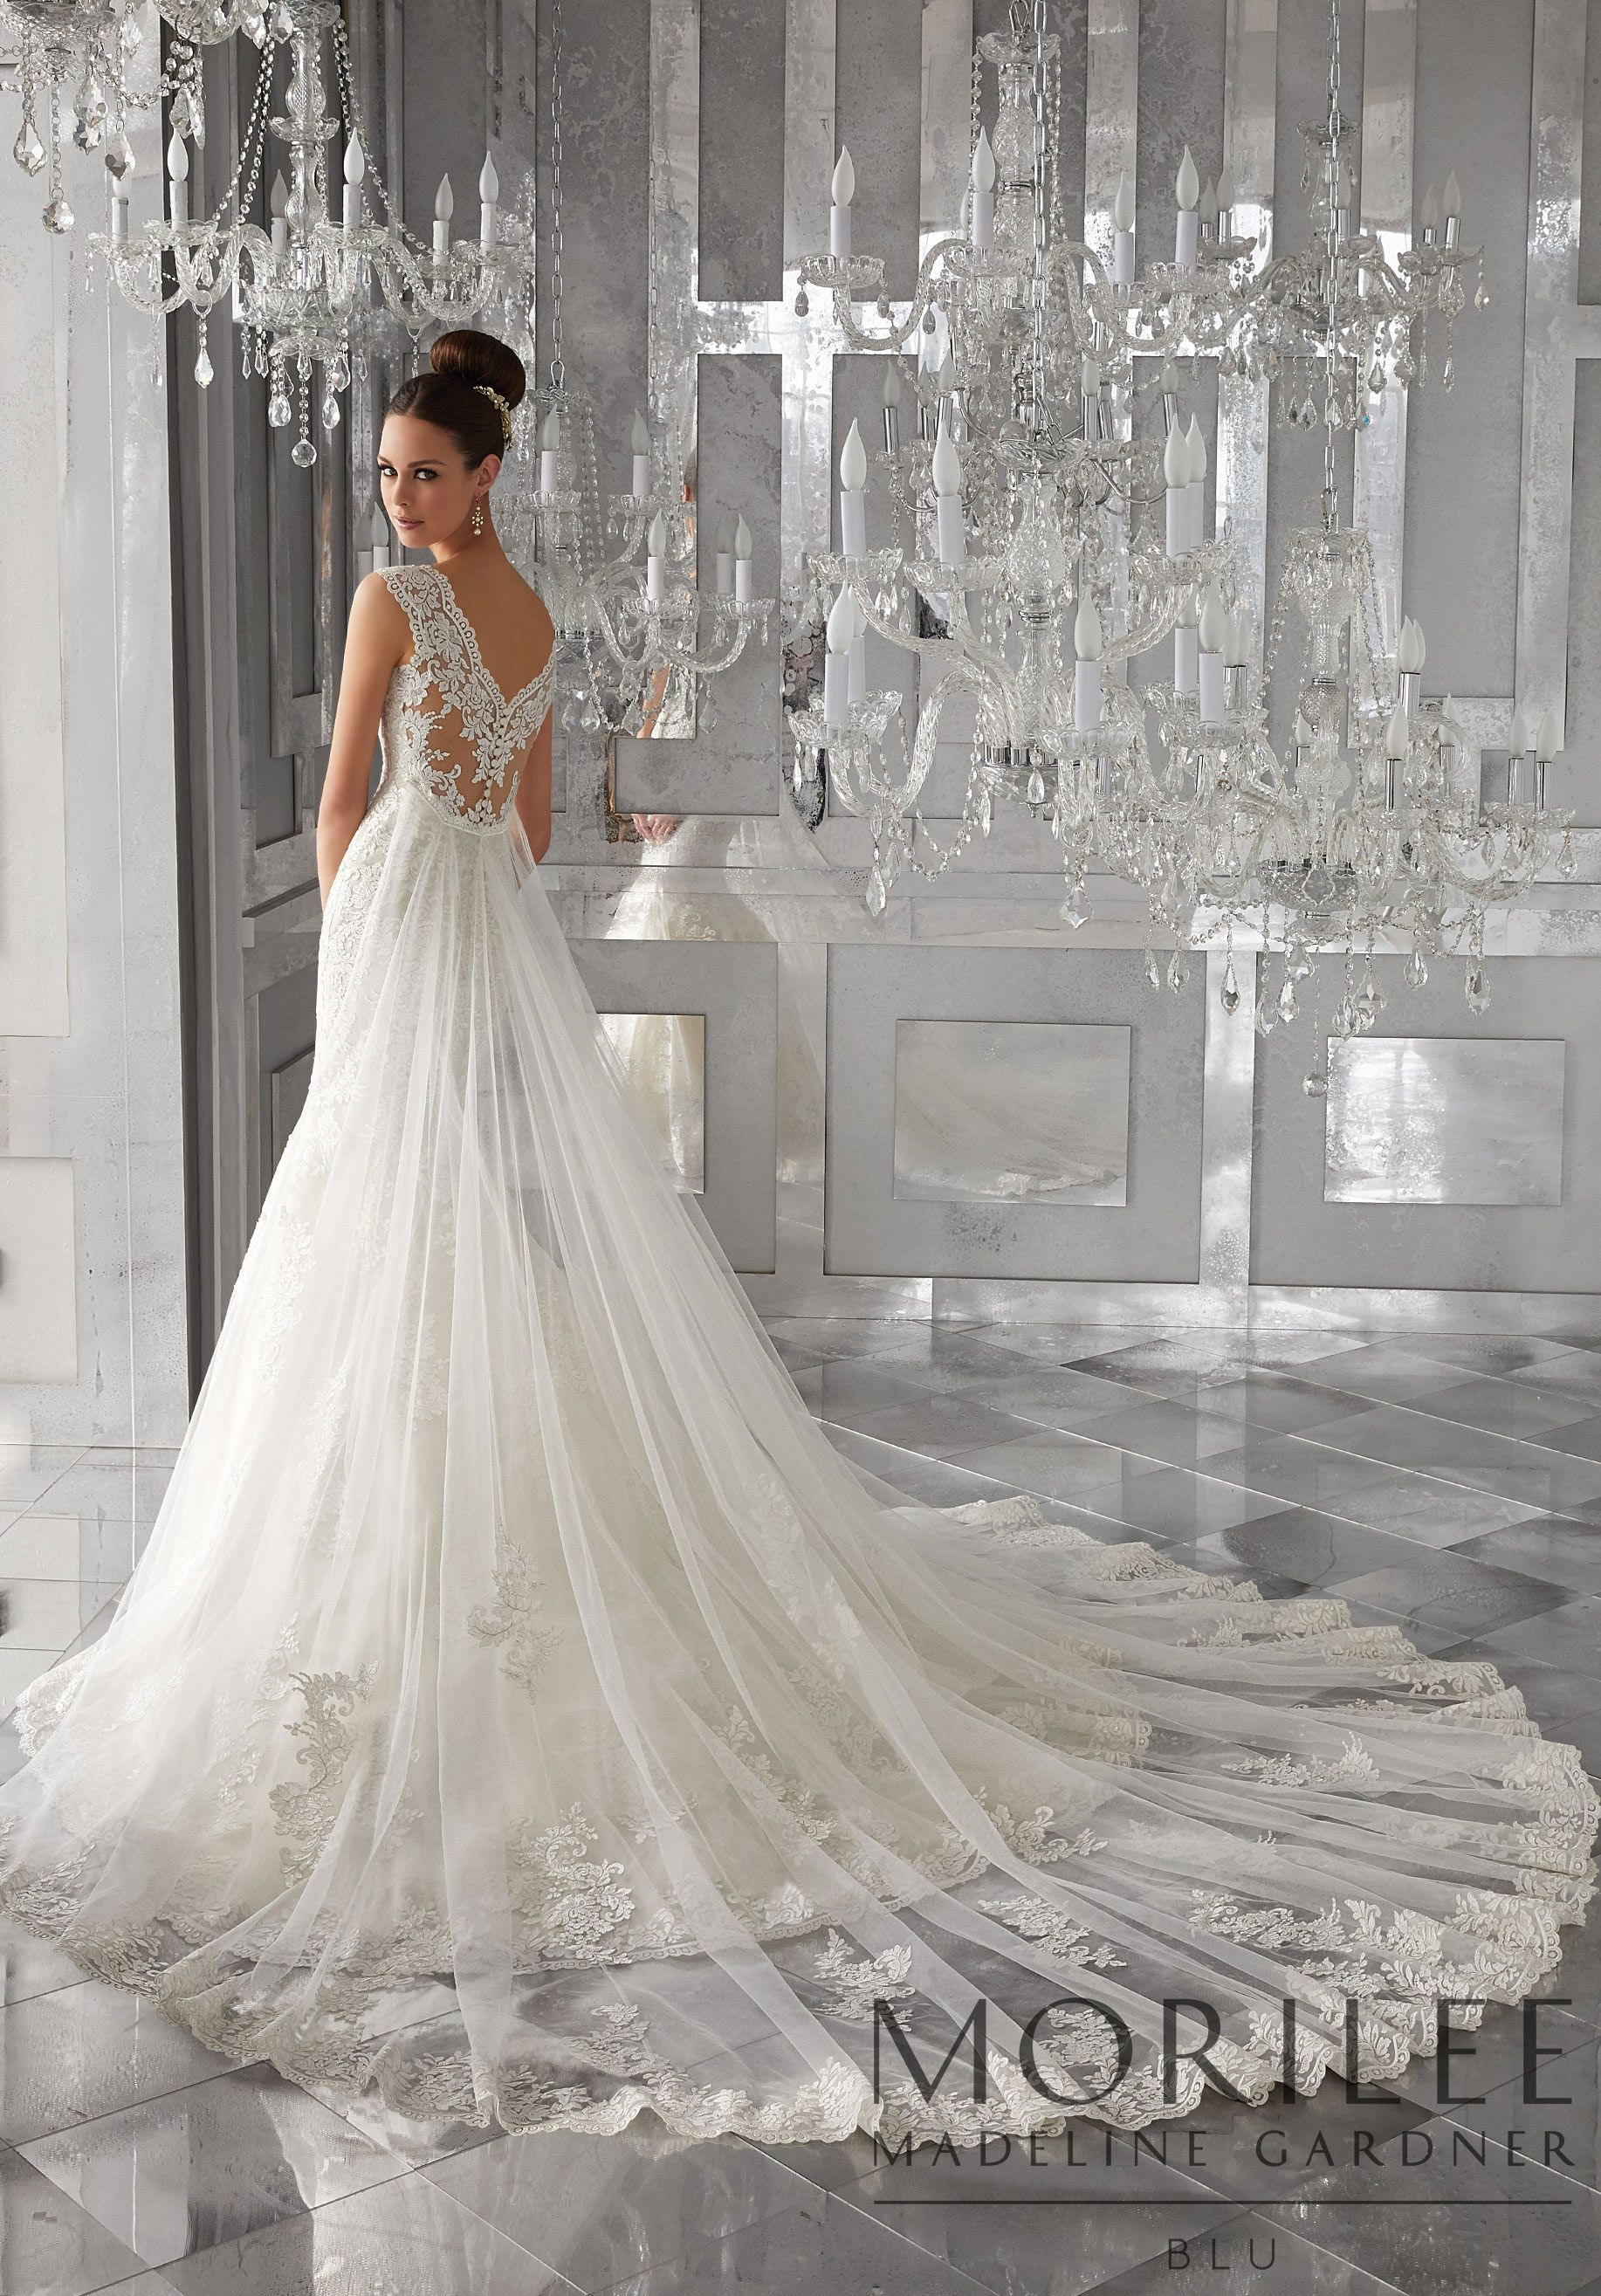 Mori lee madeline gardner wedding dress  Morilee  Madeline Gardner Monet Bridal Gown This Net Fit and